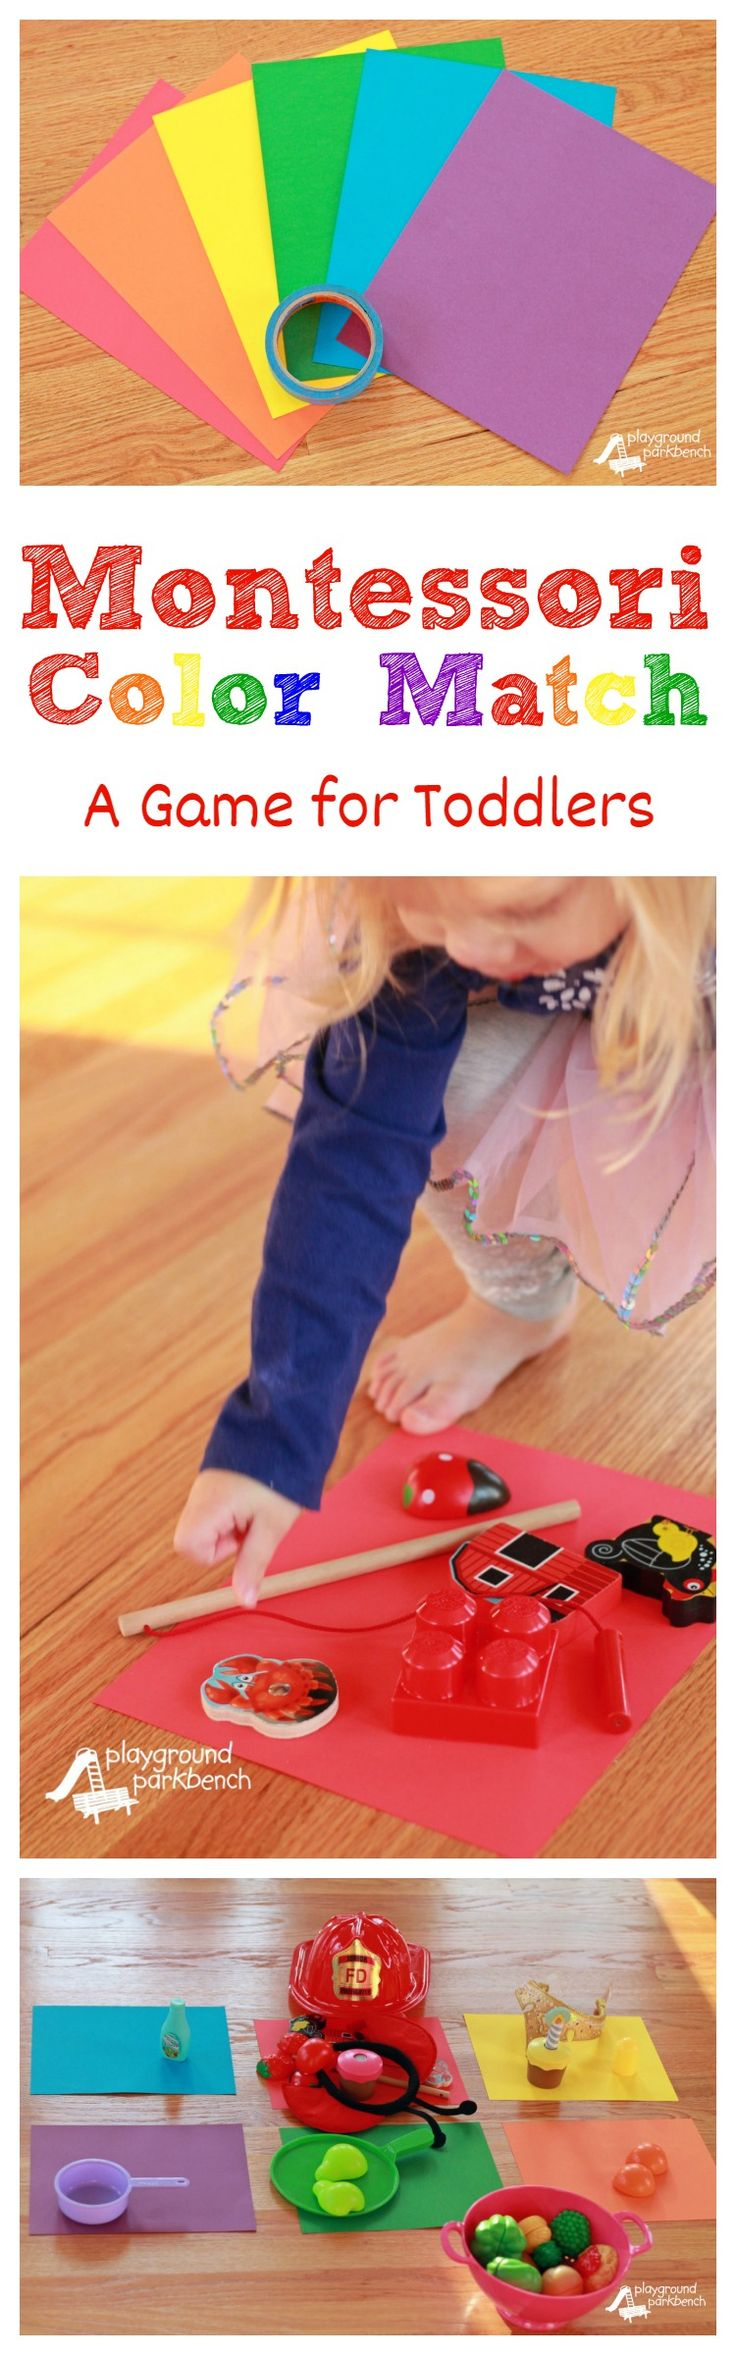 Montessori Color Match - An Easy Game for Toddlers.  Teach your toddler to discern and name their colors with this super simple game